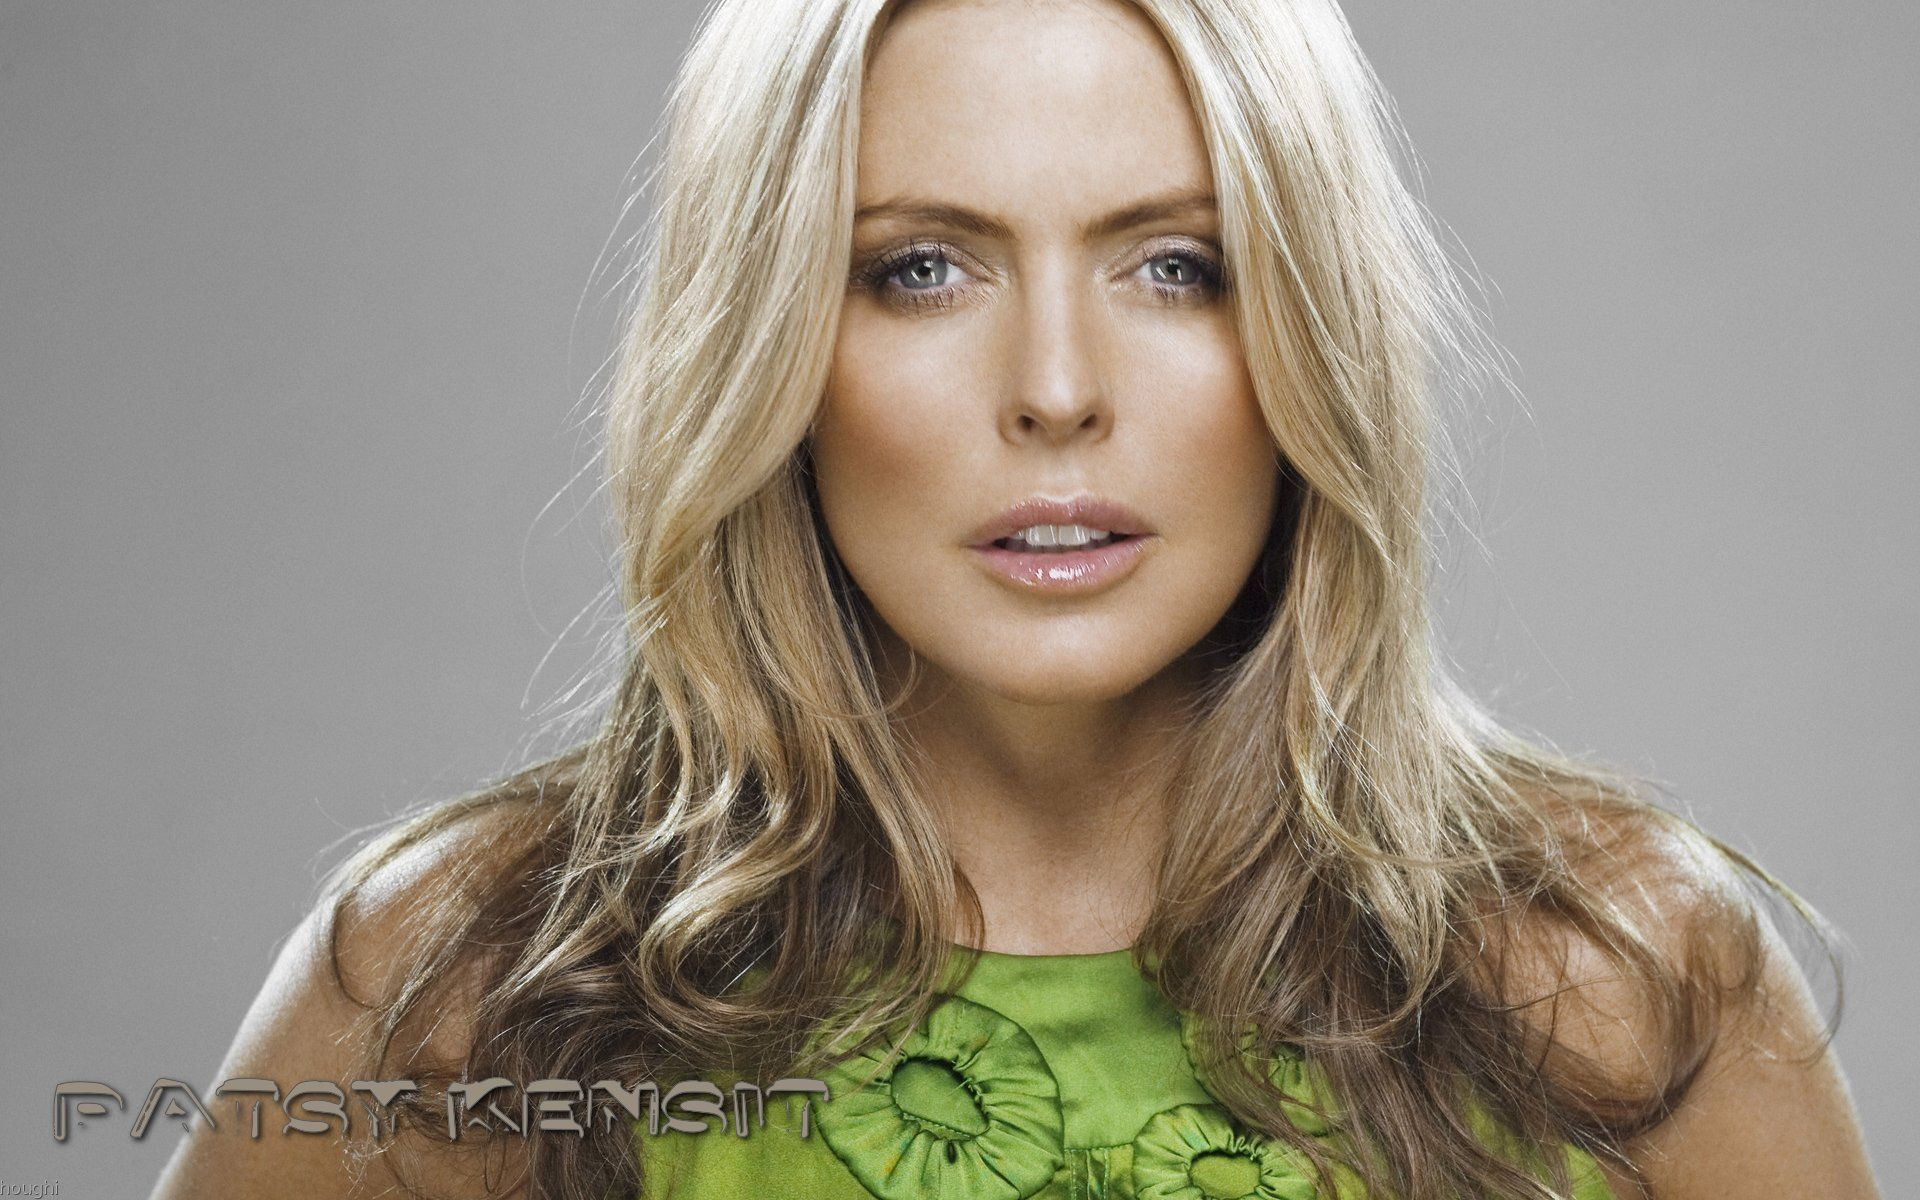 Patsy Kensit's quote #7